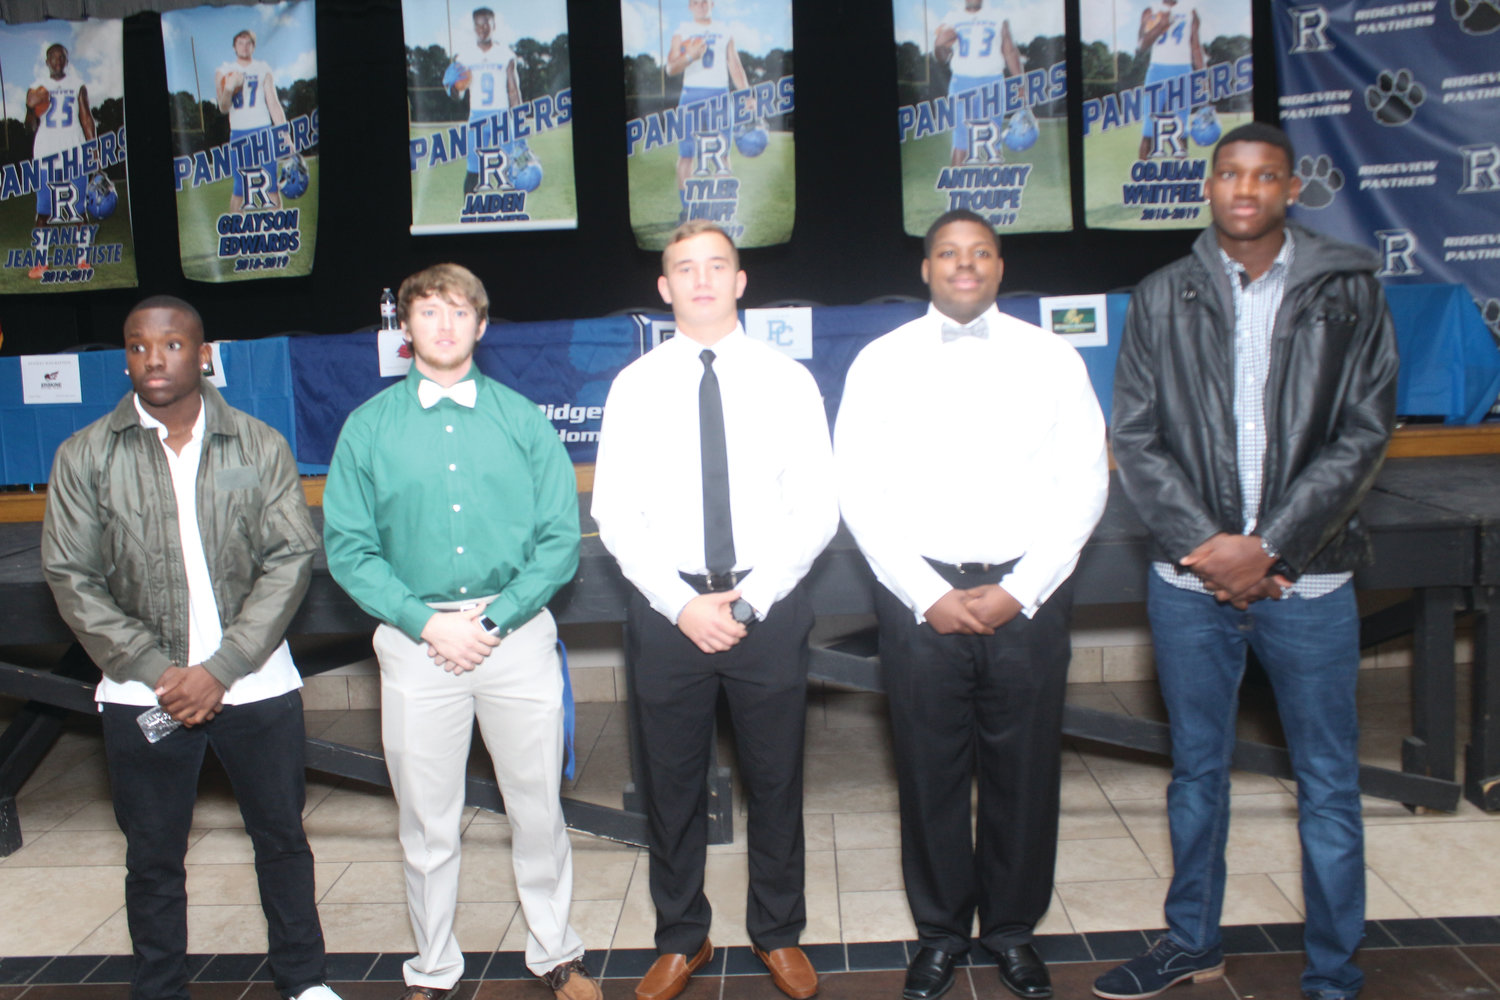 Ridgeview High's football signees, l-r, Stanley Jean-Baptiste heading to Geneva College in Beaver Falls, PA; Grayson Edwards, wide receiver, heading to Methodist University in North Carolina; Tyler Huff, quarterback, heading to Presbyterian College in South Carolina, Anthony Troupe, offensive lineman, heading to Methodist University and Odjuan Whitfield, defensive end, heading to Troy University in Alabama in morning signing ceremony at Ridgeview High School.